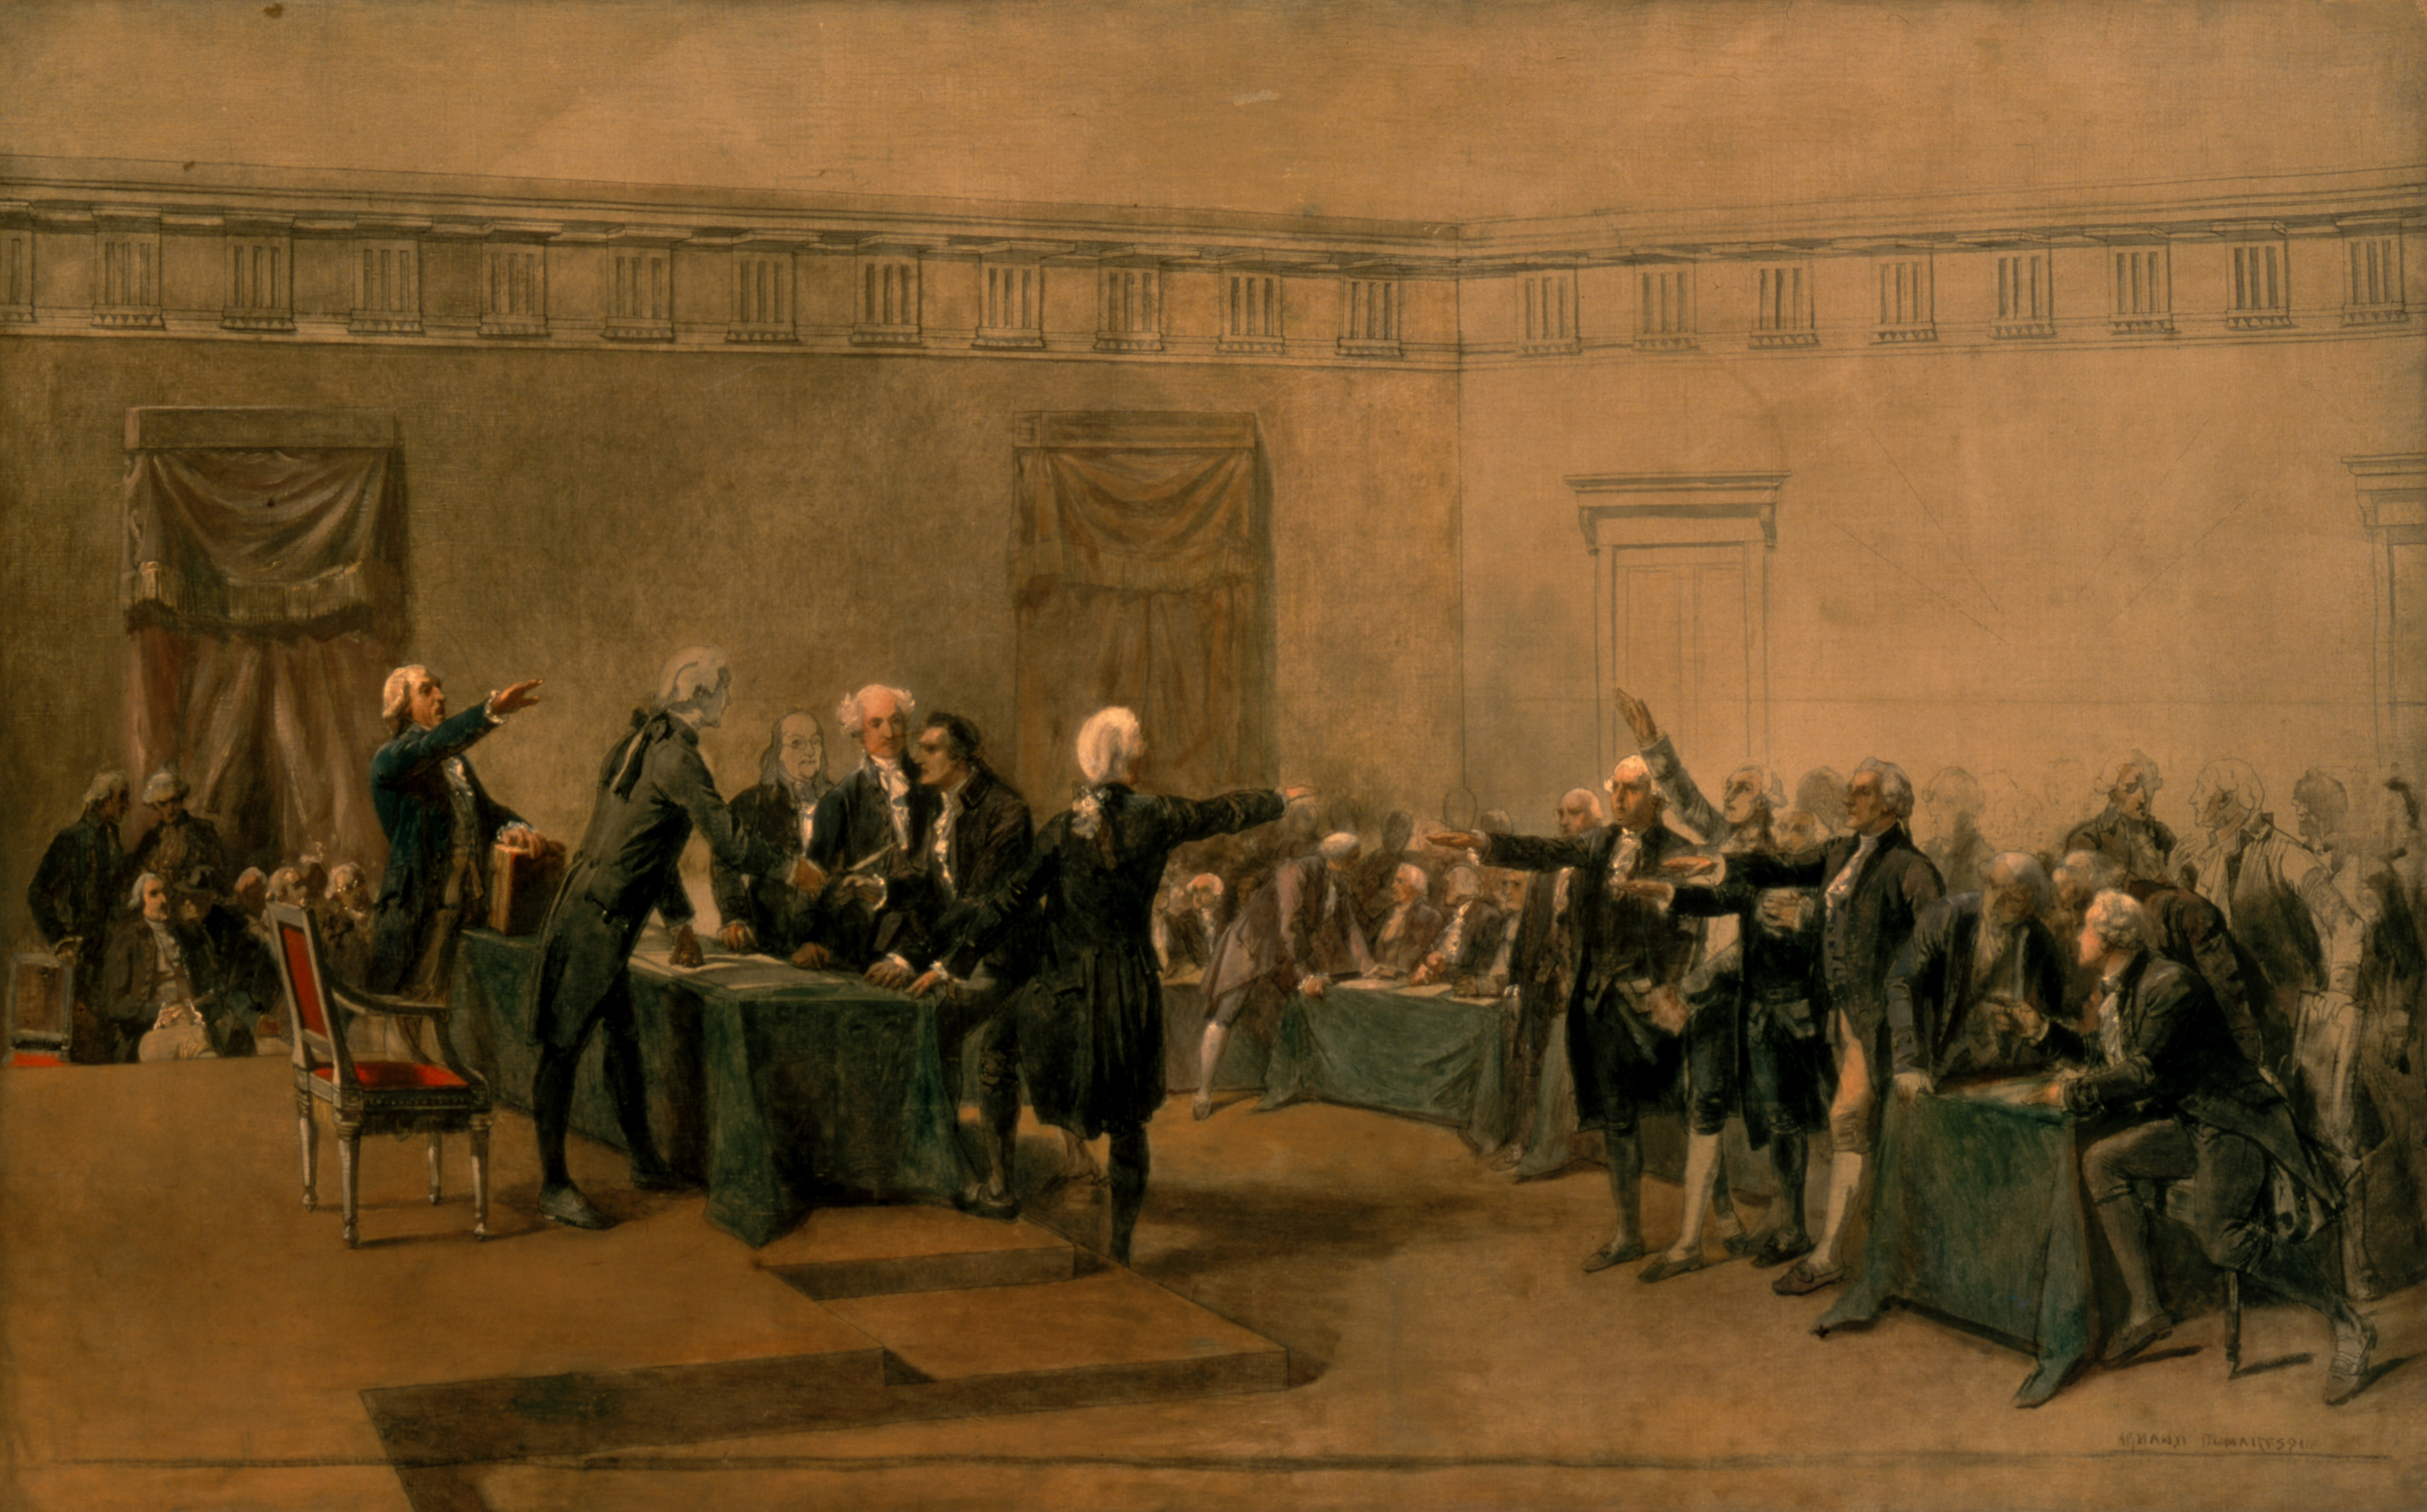 a breakdown of the american declaration of independence Declaration of independence: analysis with picture and document 1 overview: using primary sources (the declaration of independence and an artist rendition of the signing) to study the document setting us free from great britain.